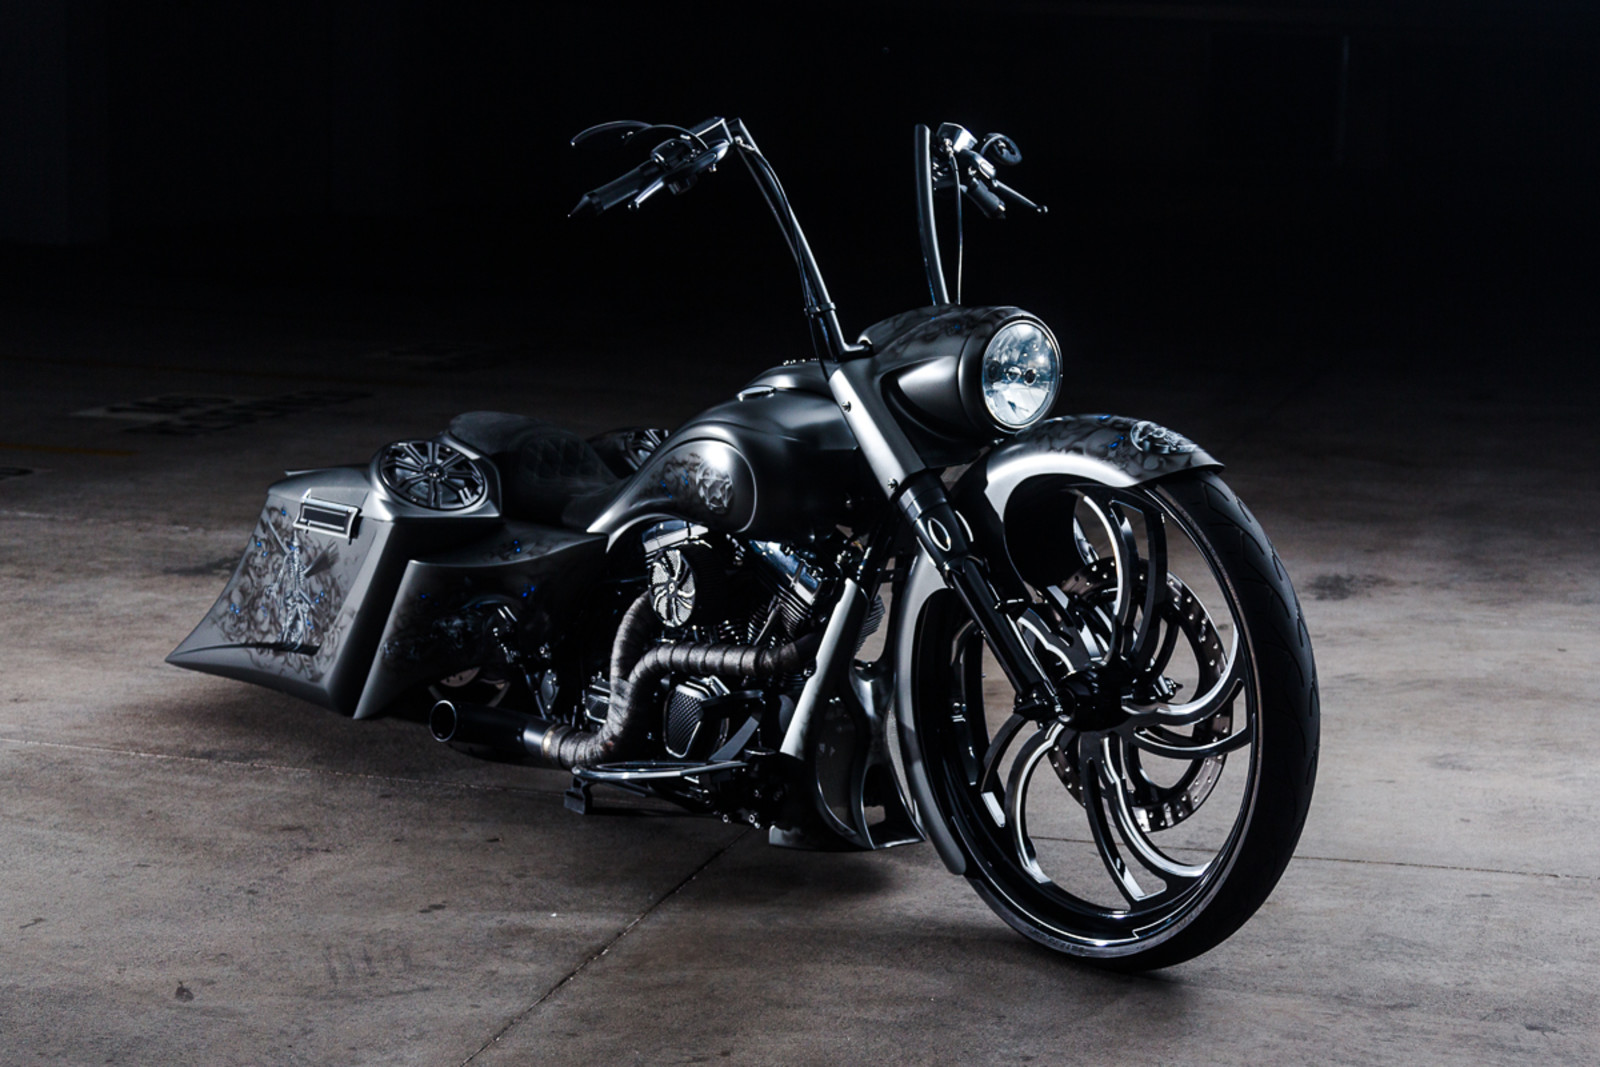 2009 Harley Davidson Famous Custom Build Show Stopper Wow